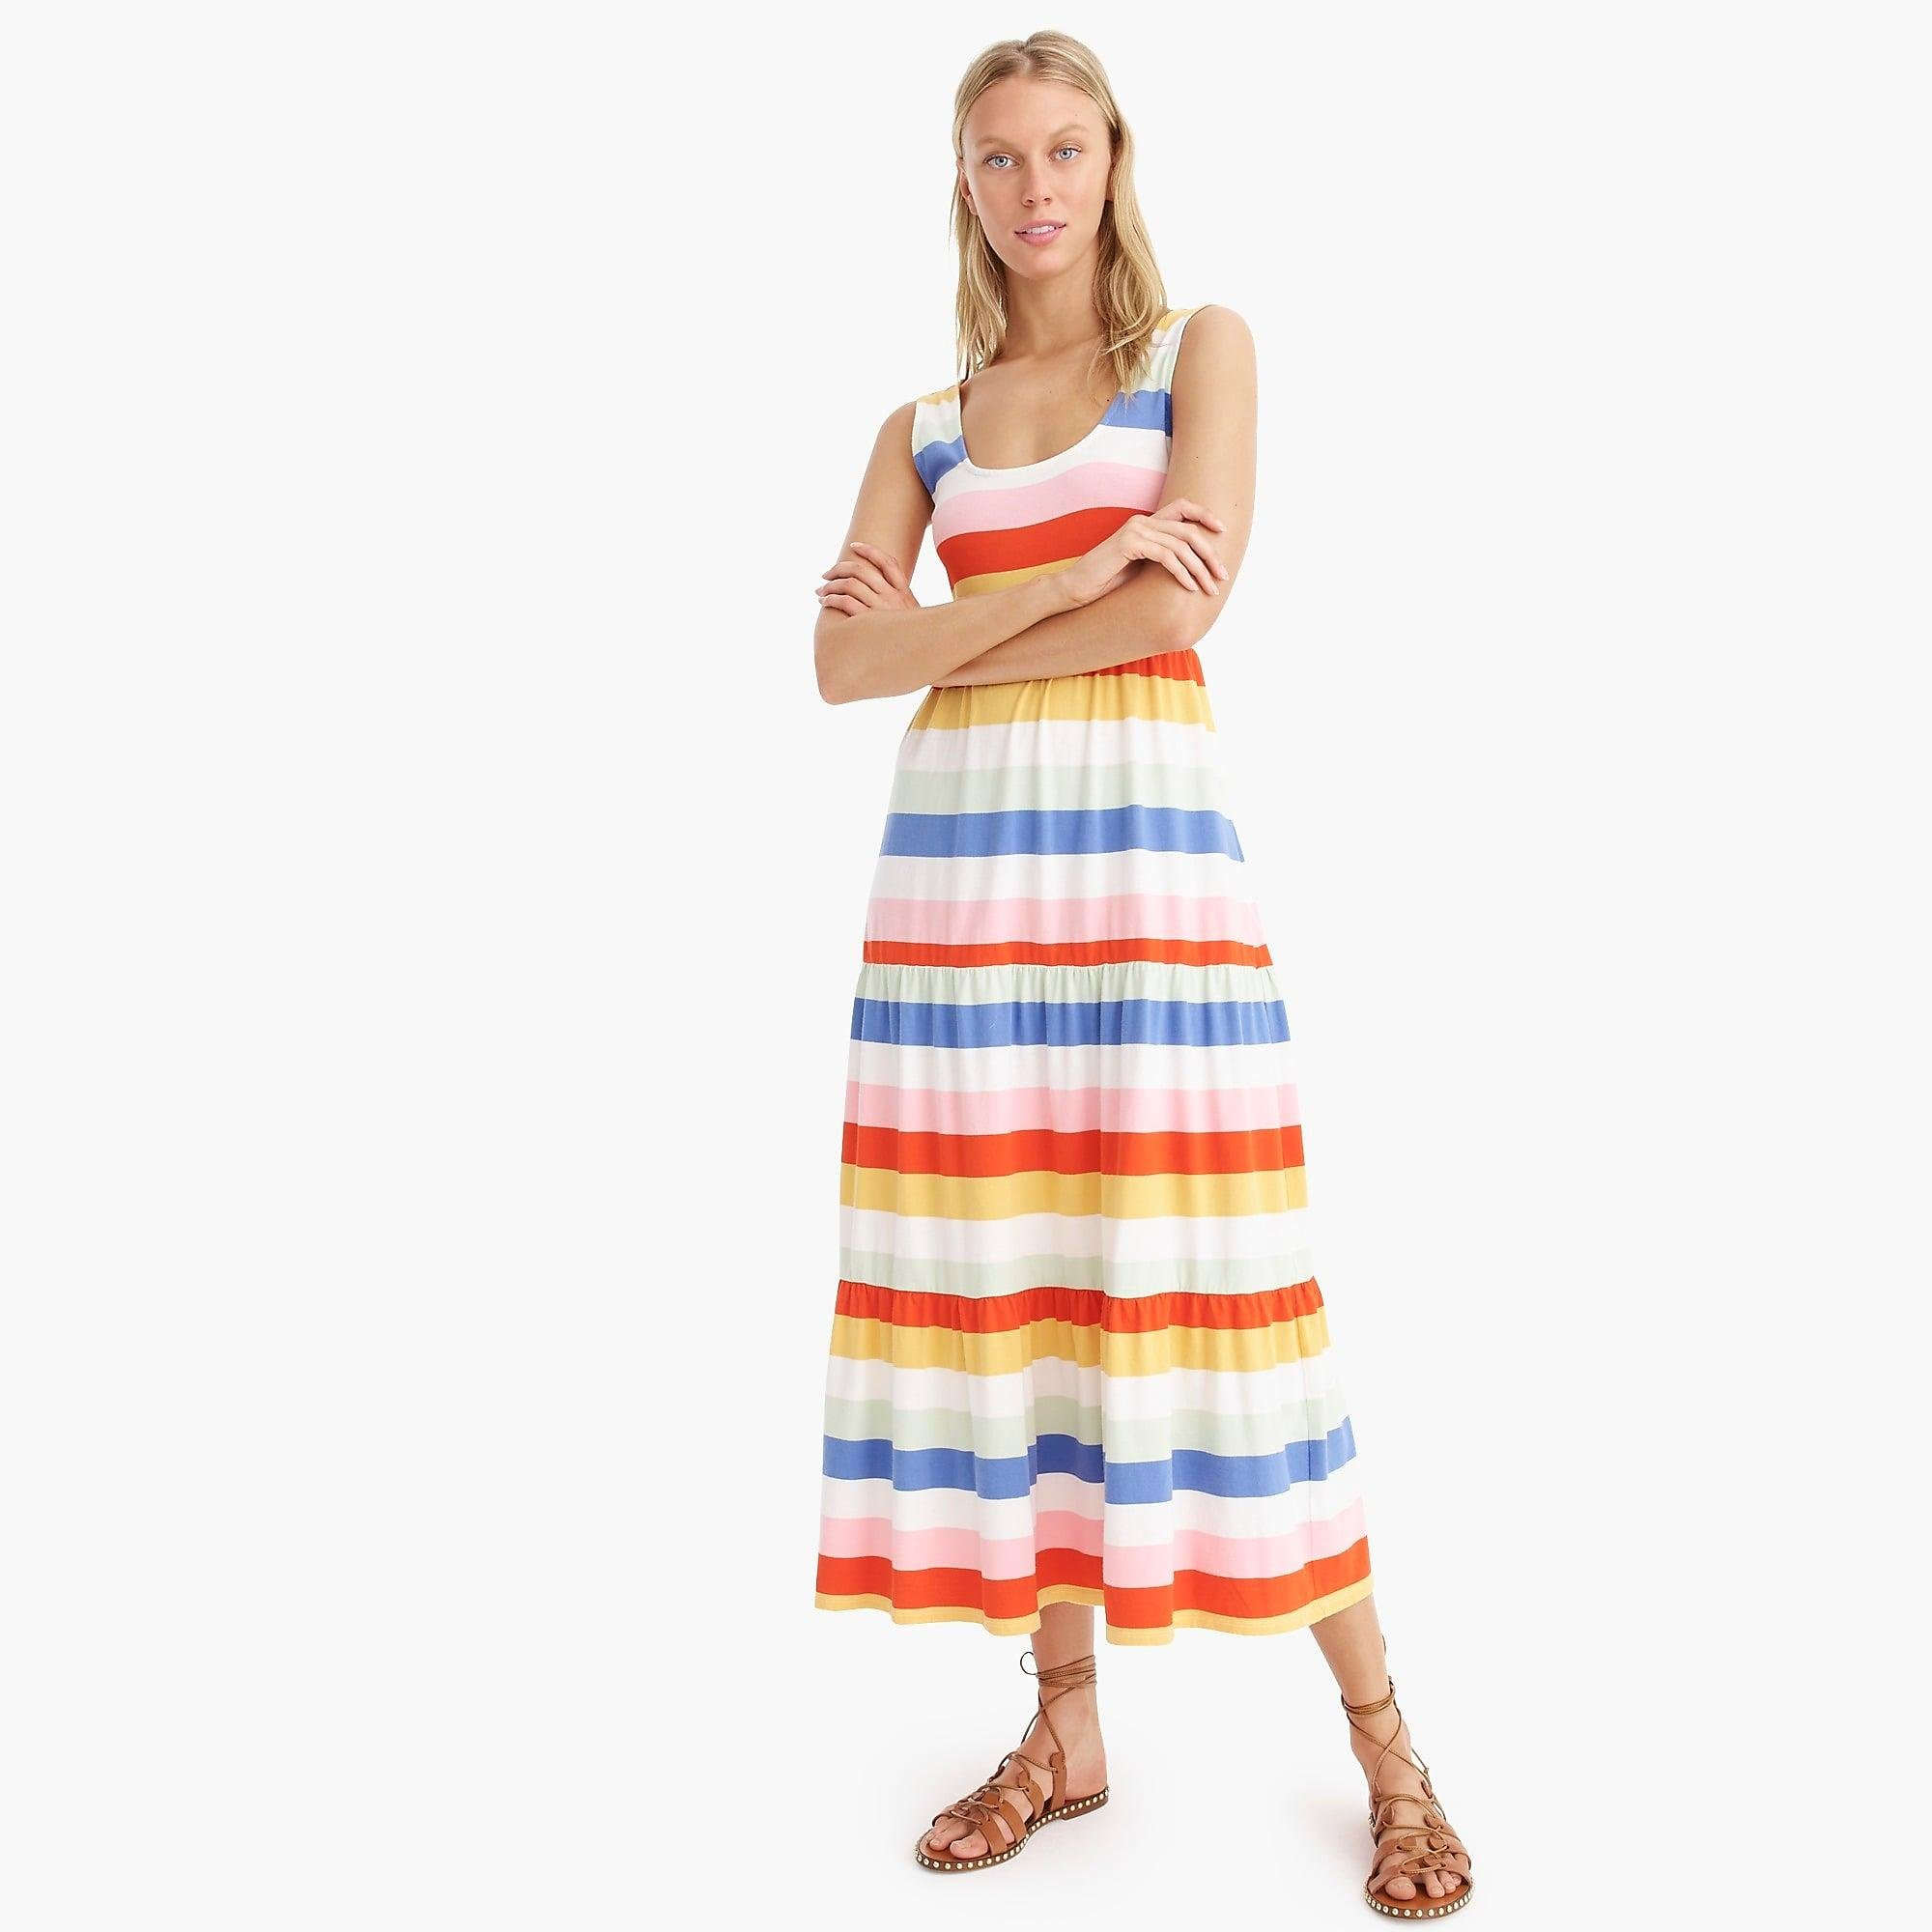 e69ffa0e32b J.Crew. Women s Tiered Knit Maxi Dress In Rainbow Wide Stripe